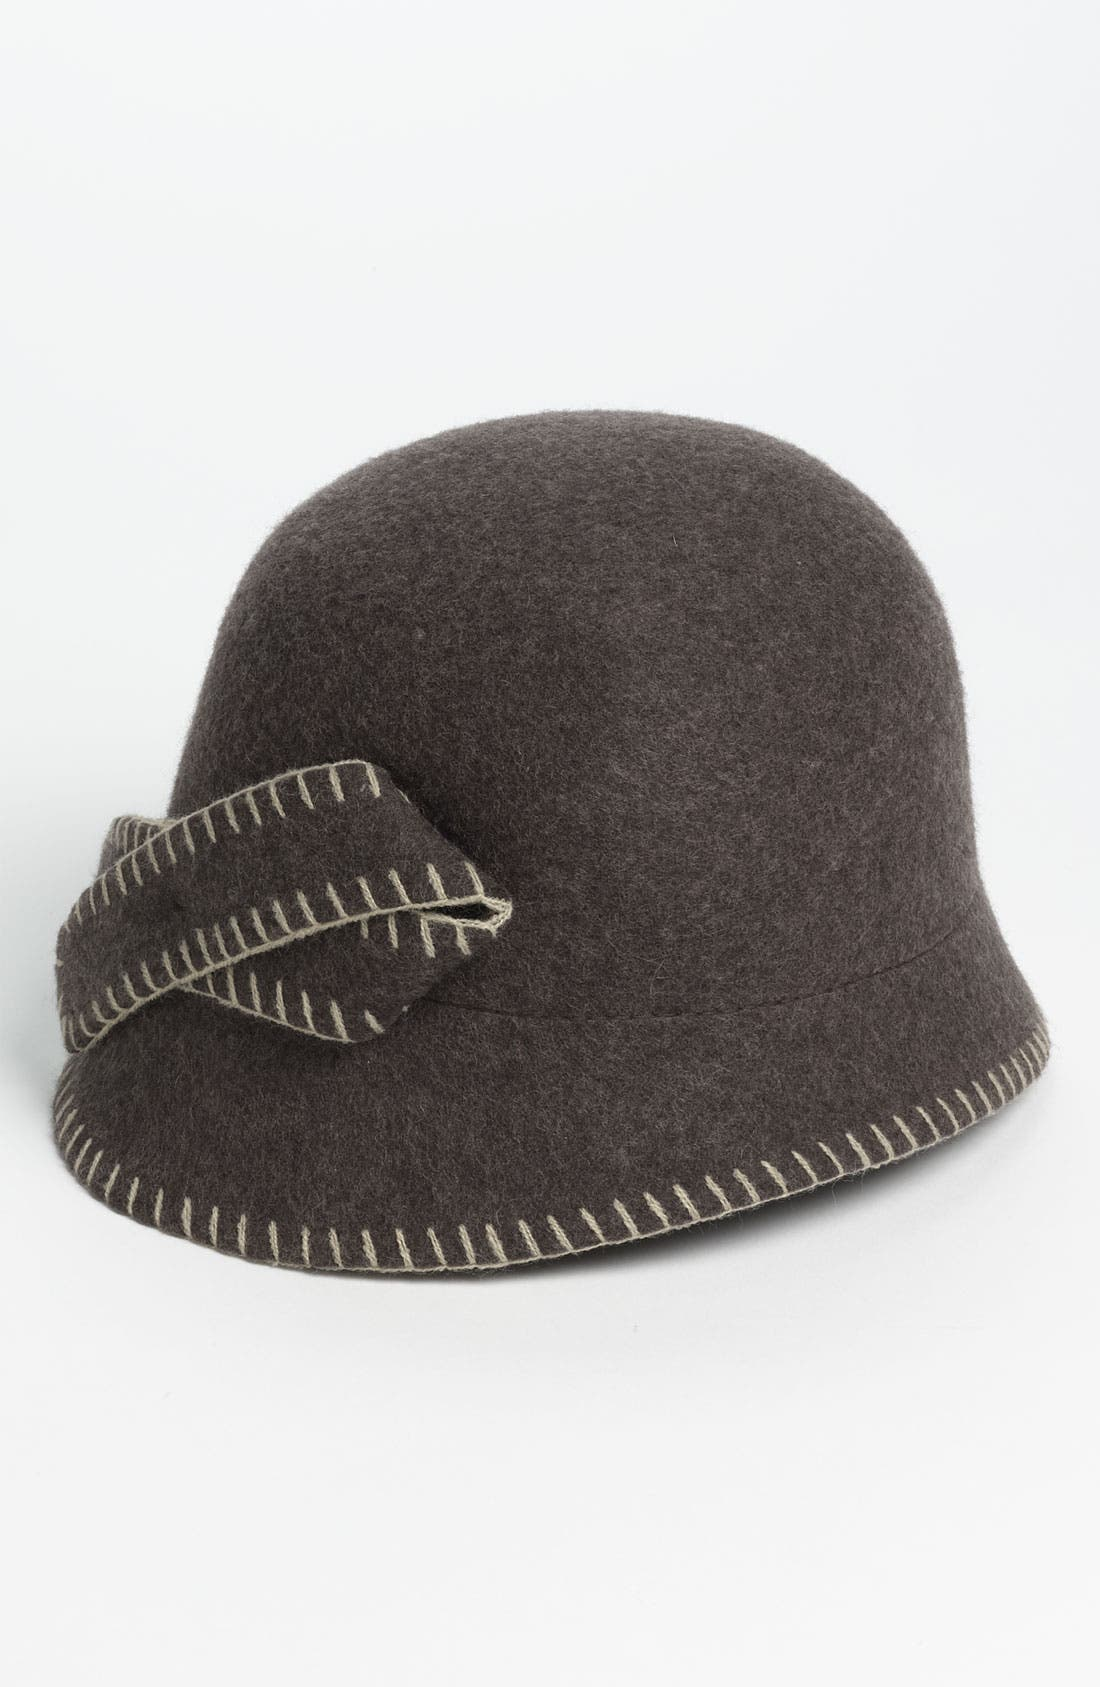 Alternate Image 1 Selected - Nordstrom Whipstitch Wool Cloche